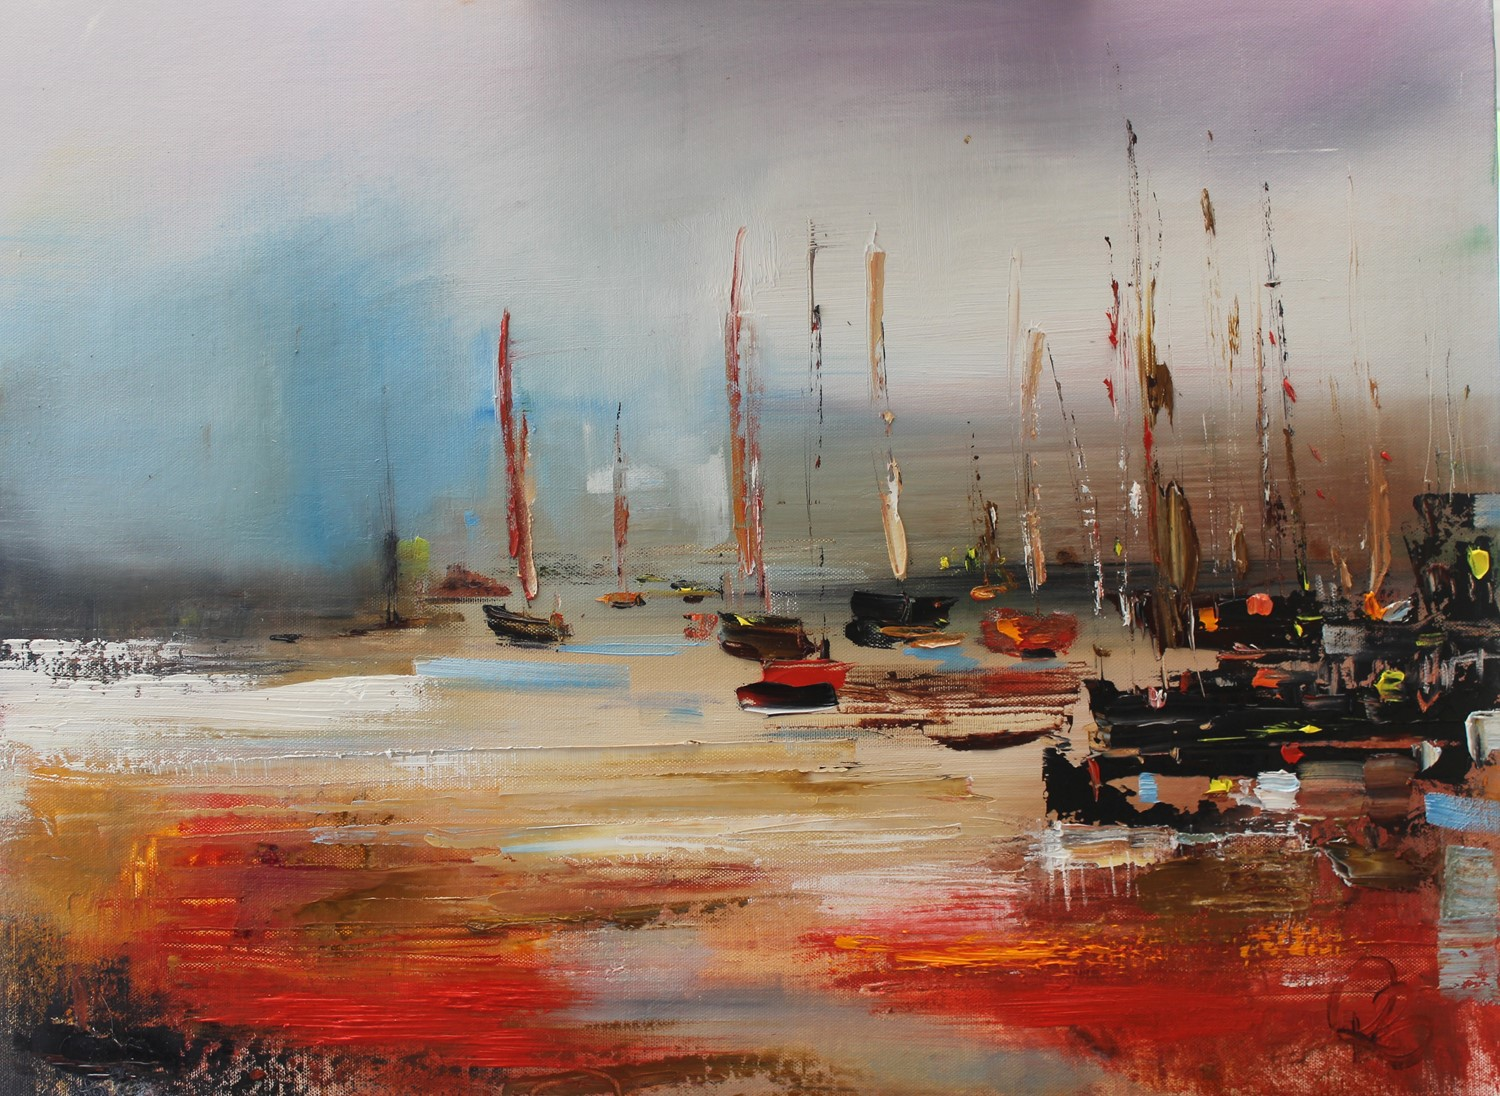 'Heading to the Harbour' by artist Rosanne Barr